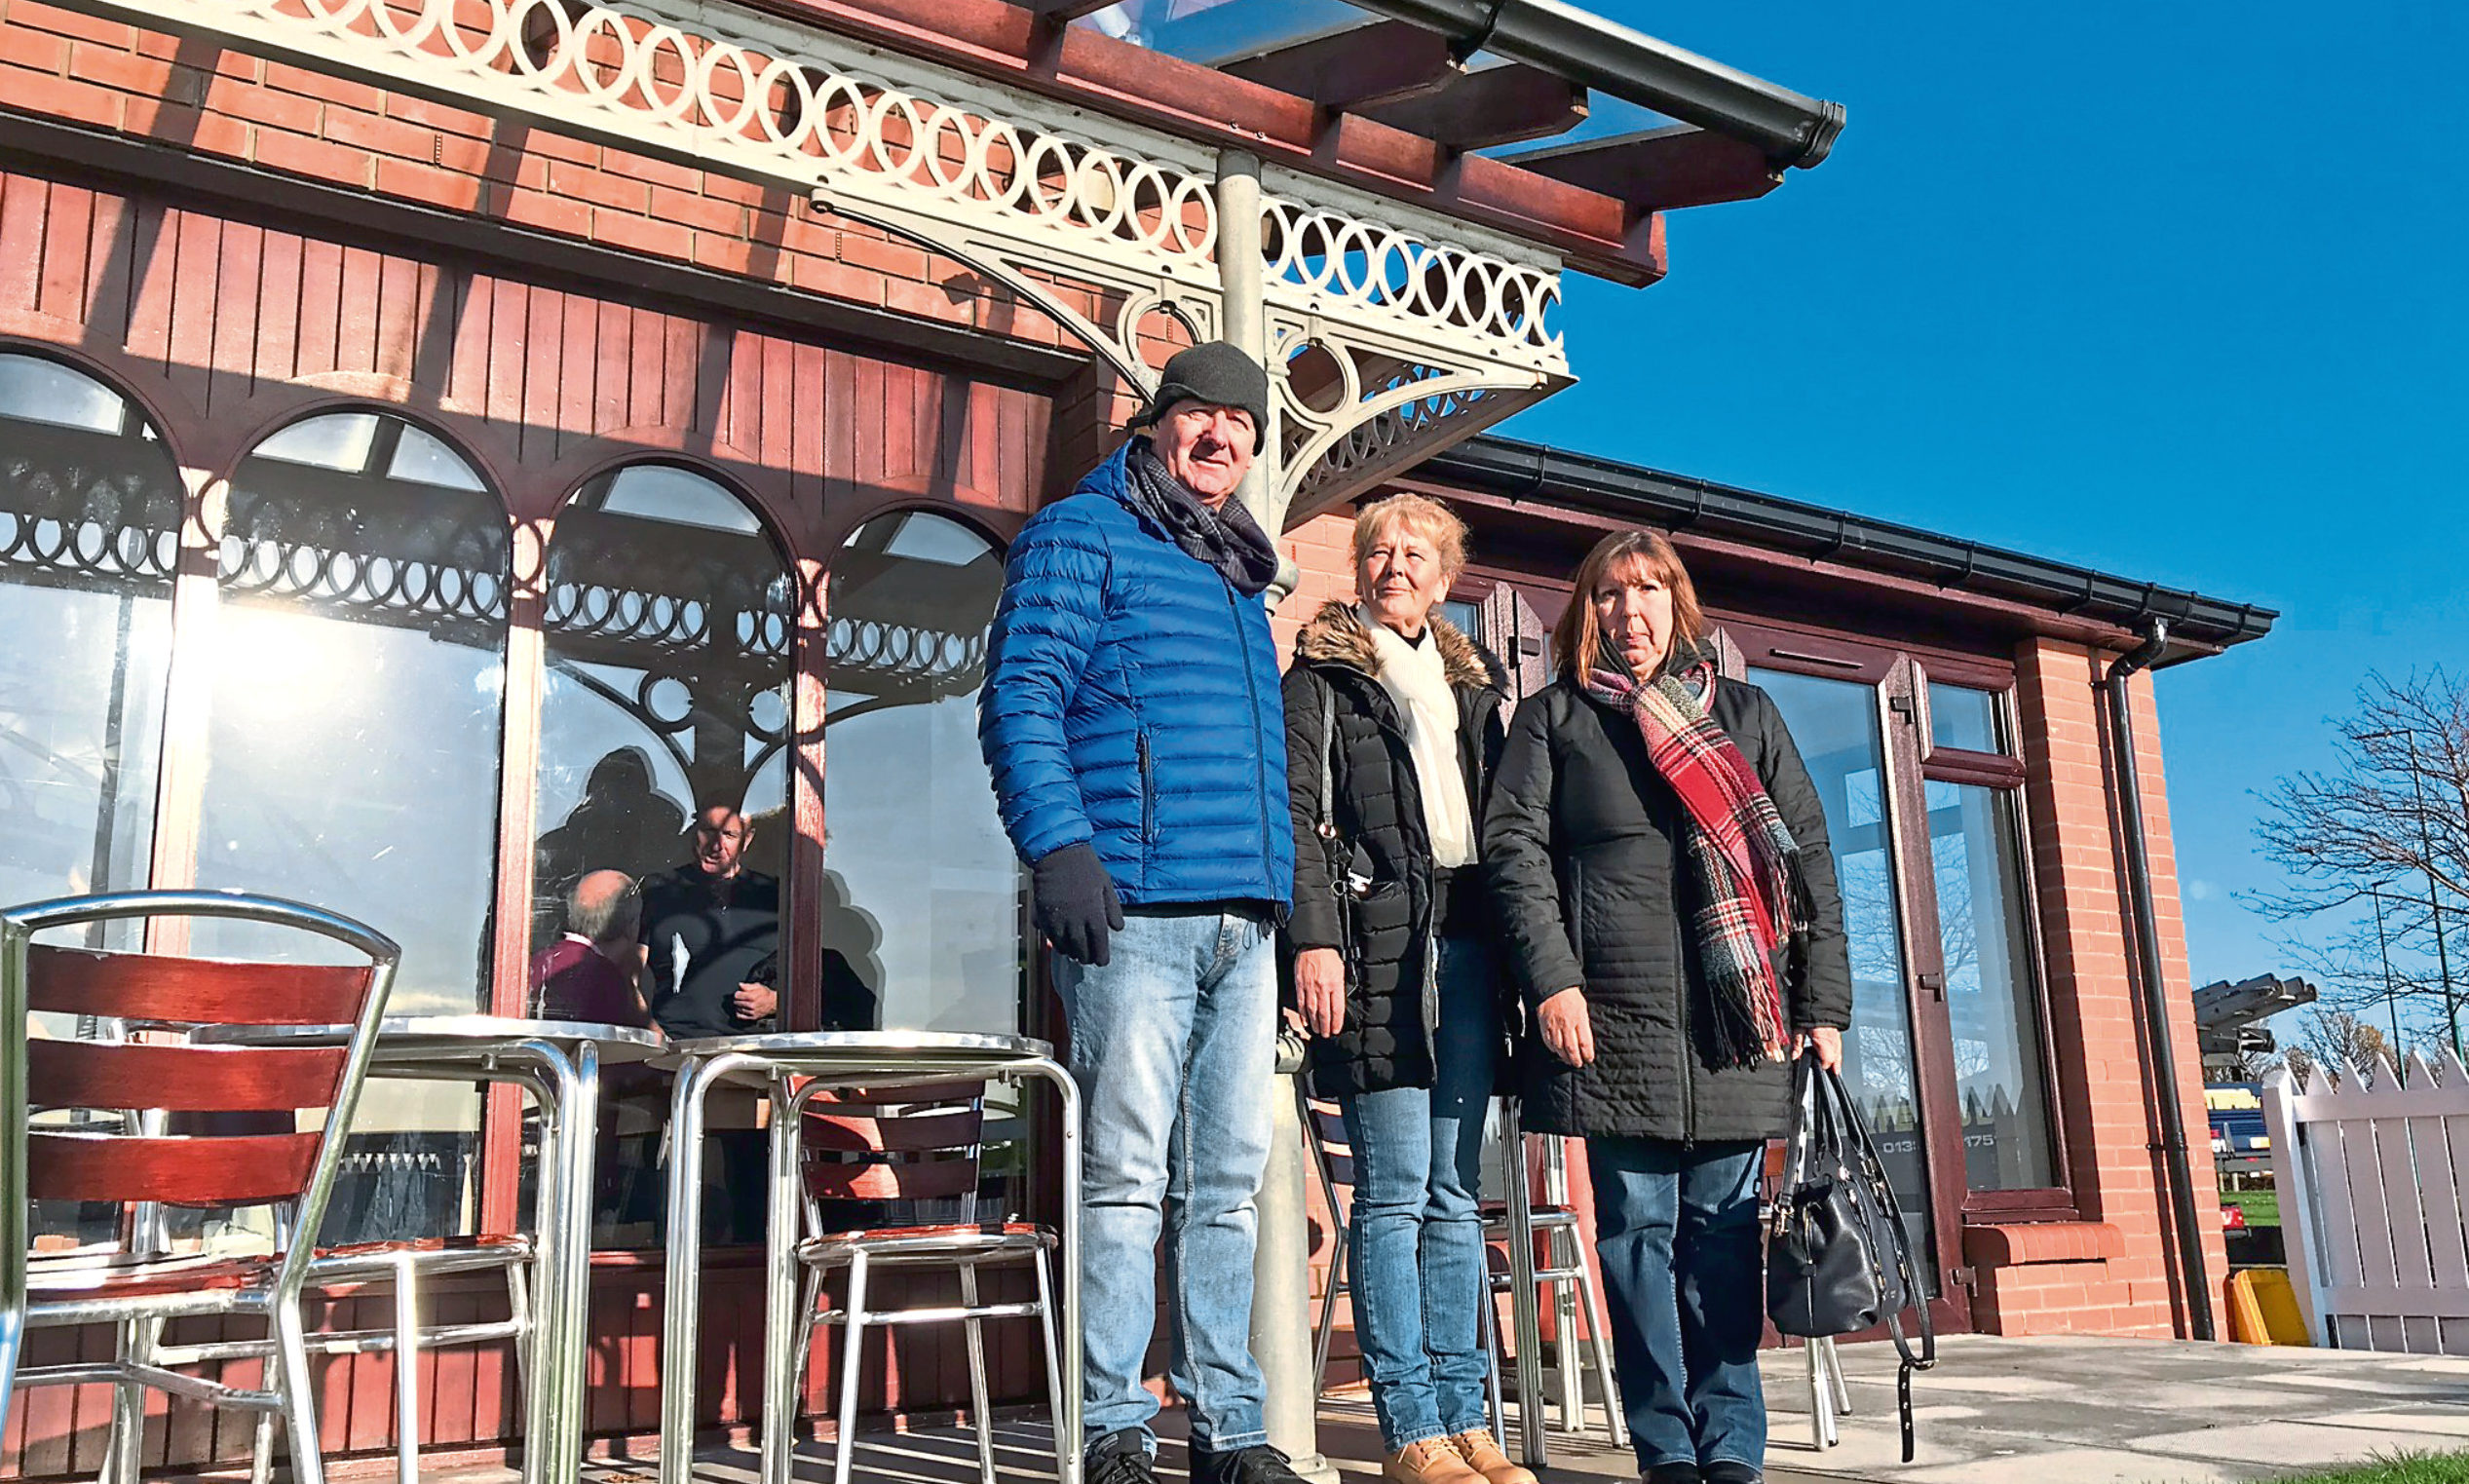 Brother David Fox, sister Isobel and sister-in-law Aileen, along with some of Brian's metalwork at the Bridgeview Station cafe in Dundee.